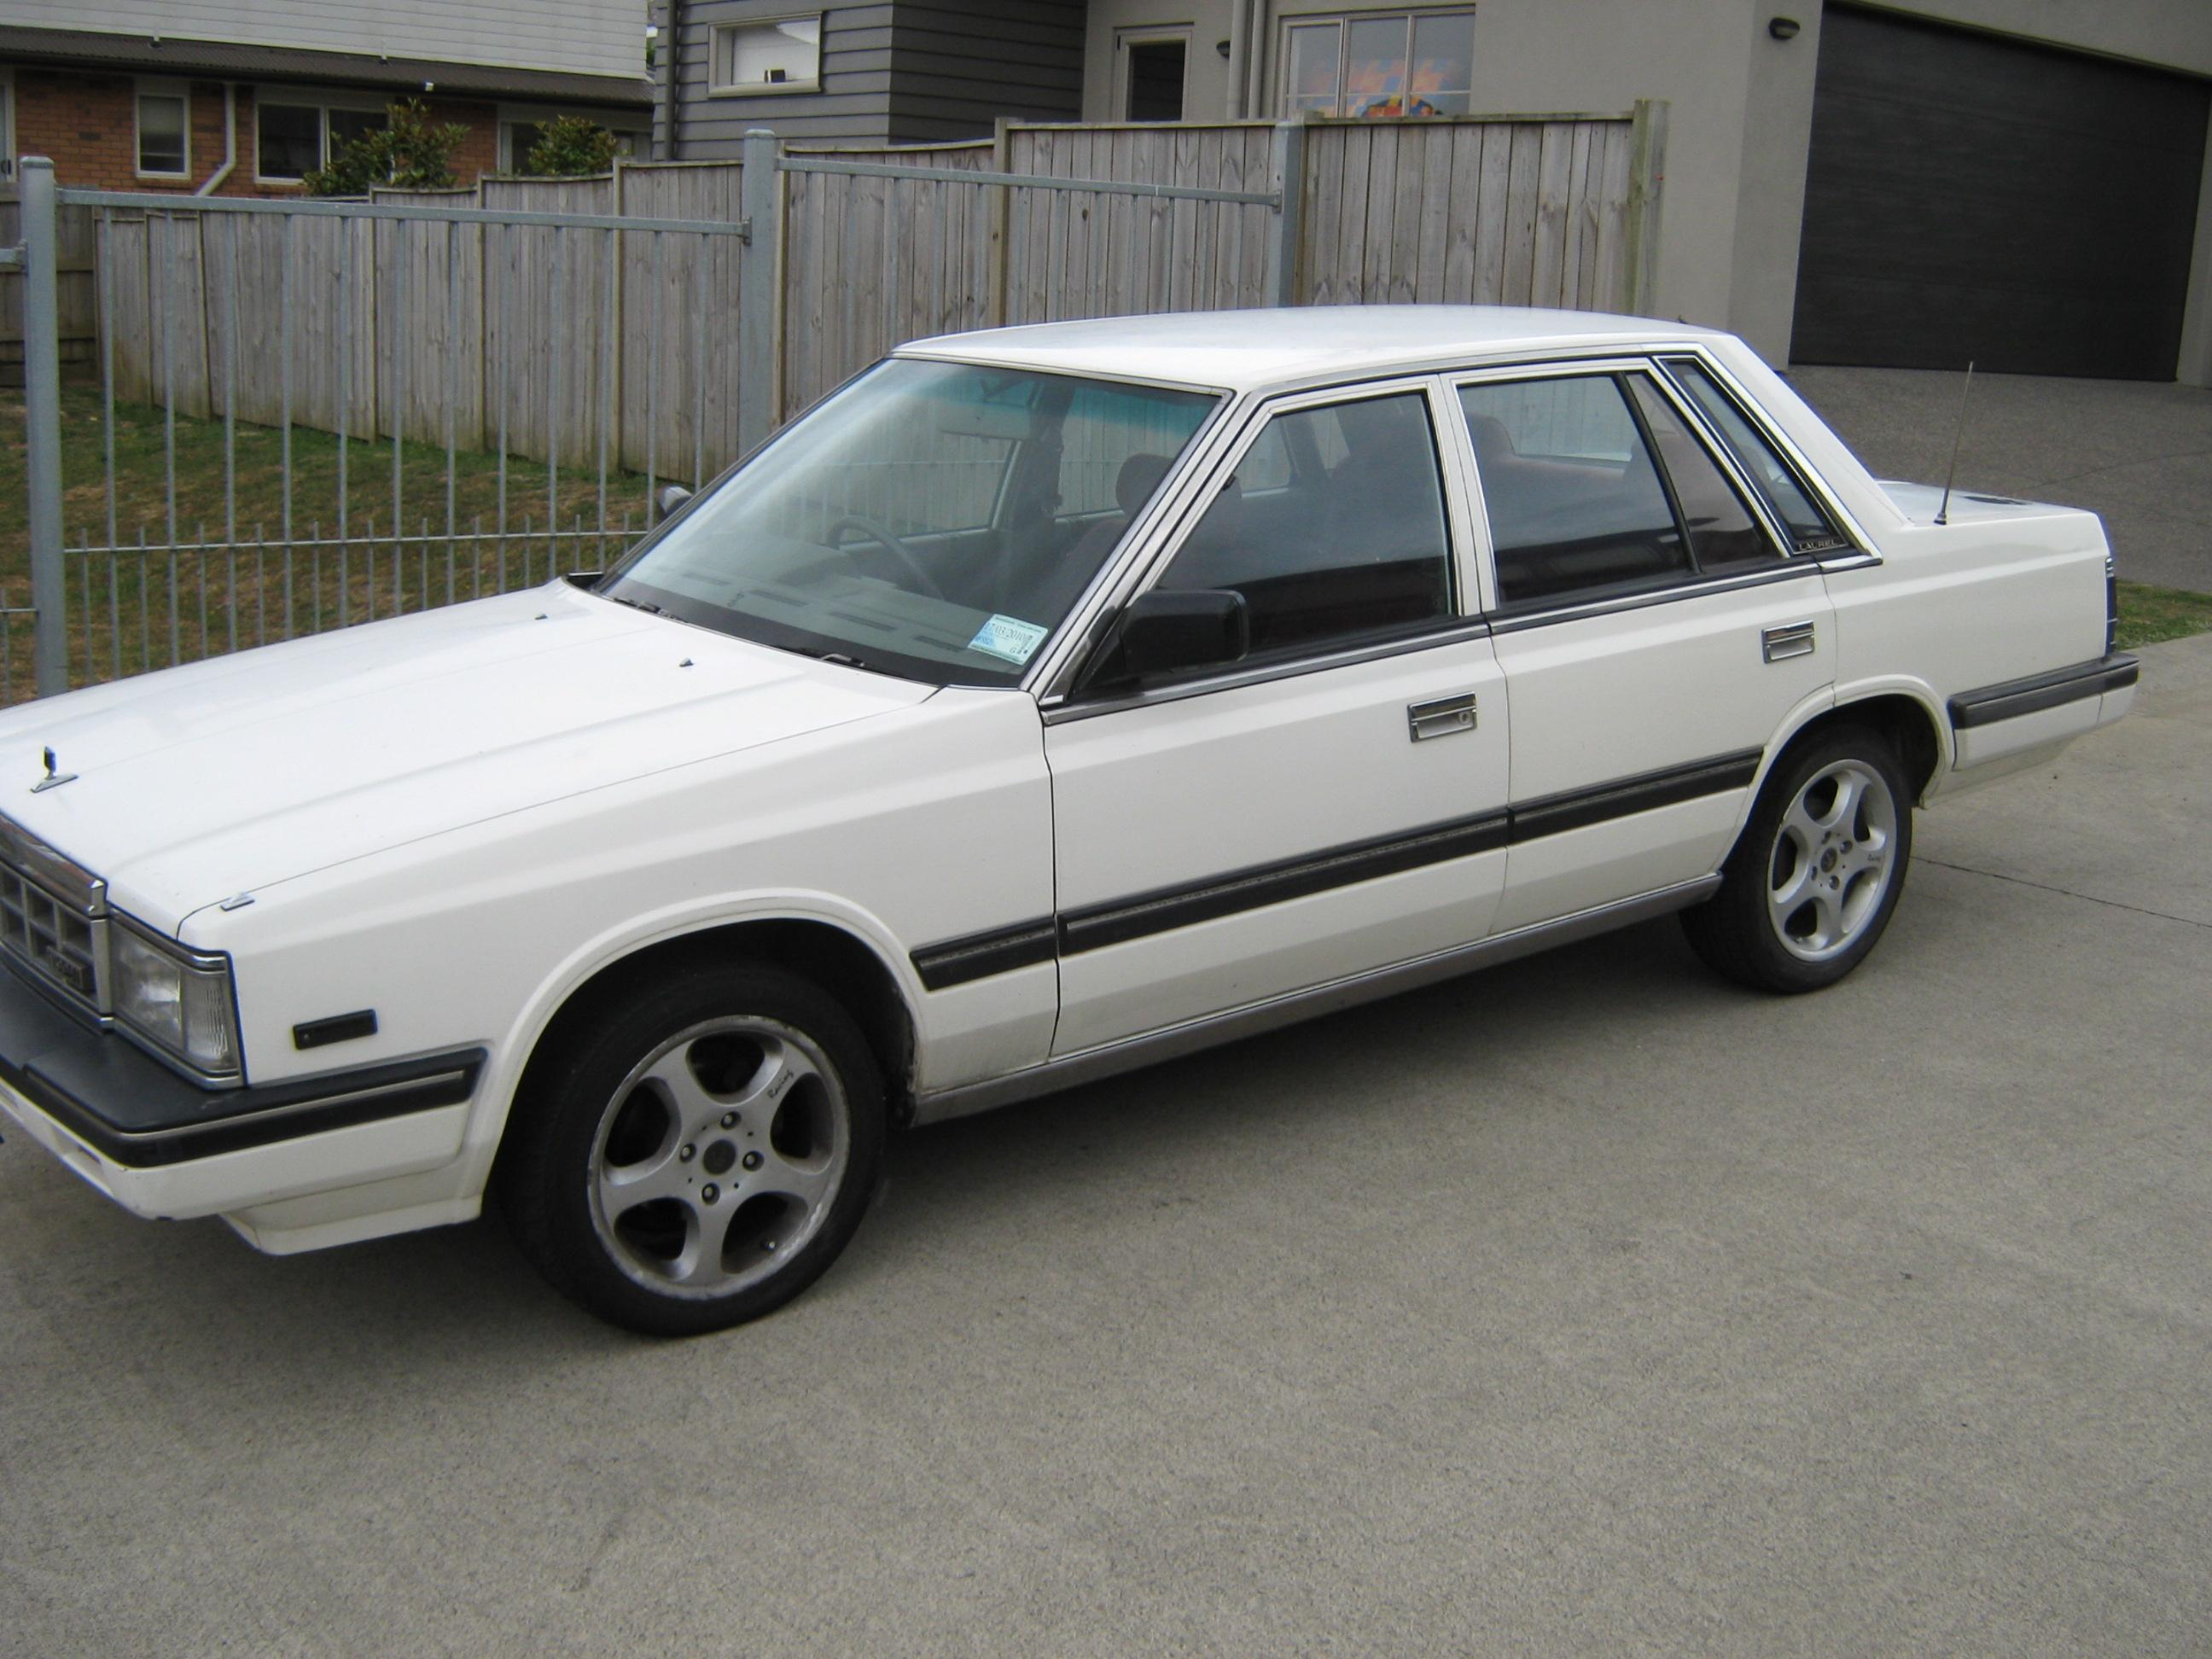 Delta_richo's 1985 Nissan Laurel